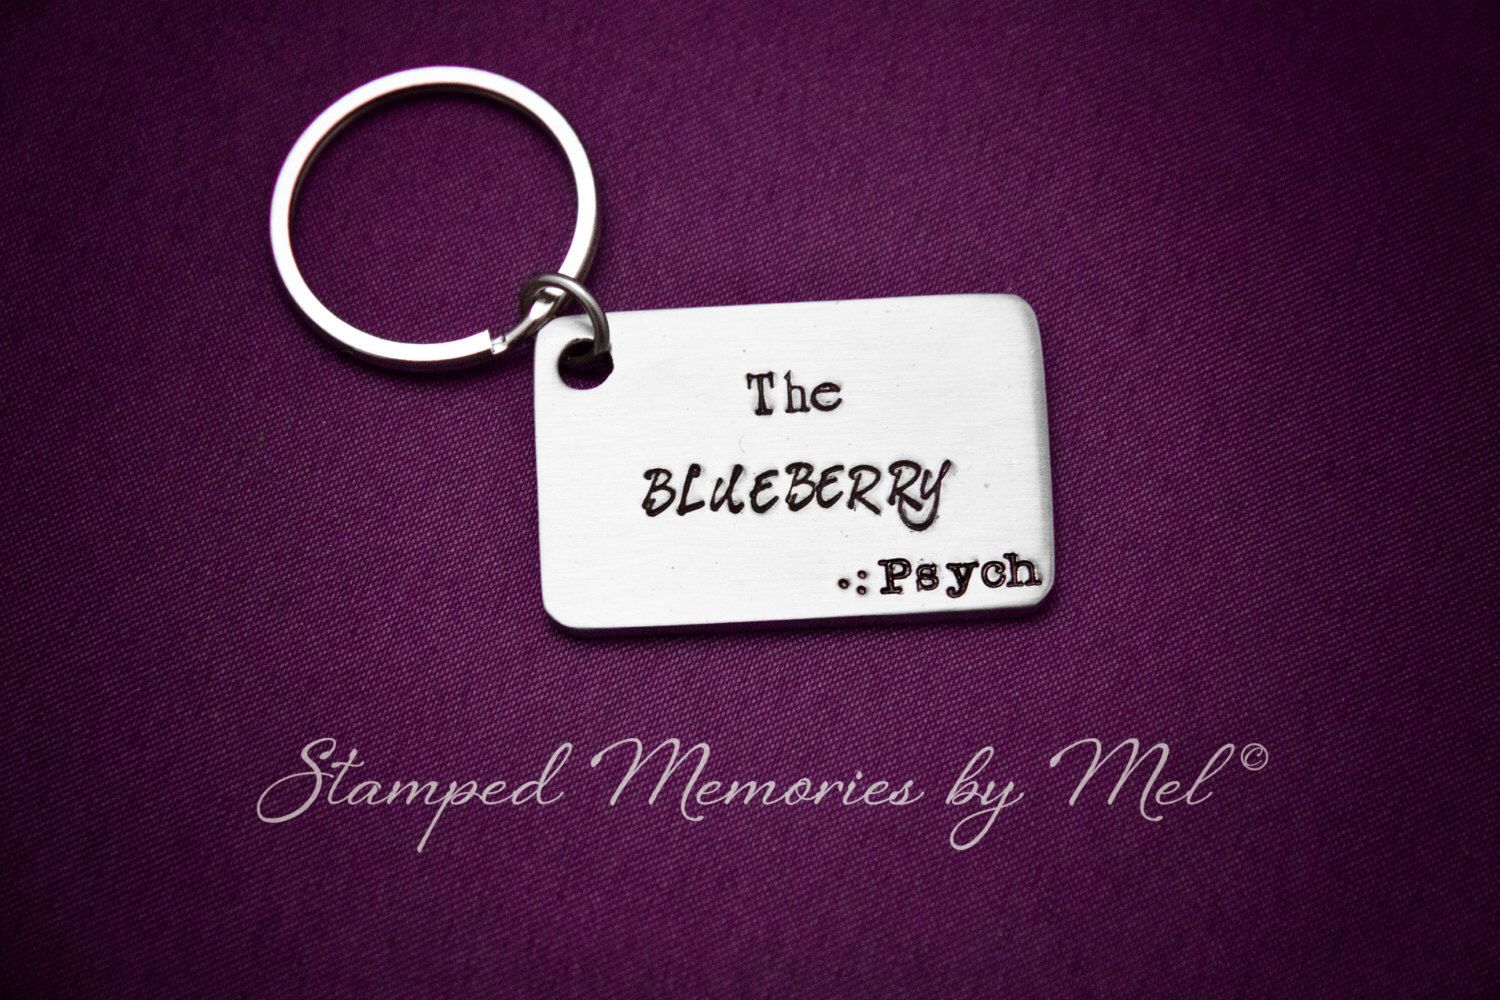 The Blueberry - Hand Stamped Psych Keychain - Gus and Shawn Little Blue Car - Custom Handmade Stainless Steel Fan Key Chain - Geekery by StampedMemoriesbyMel on Etsy https://www.etsy.com/listing/165672700/the-blueberry-hand-stamped-psych